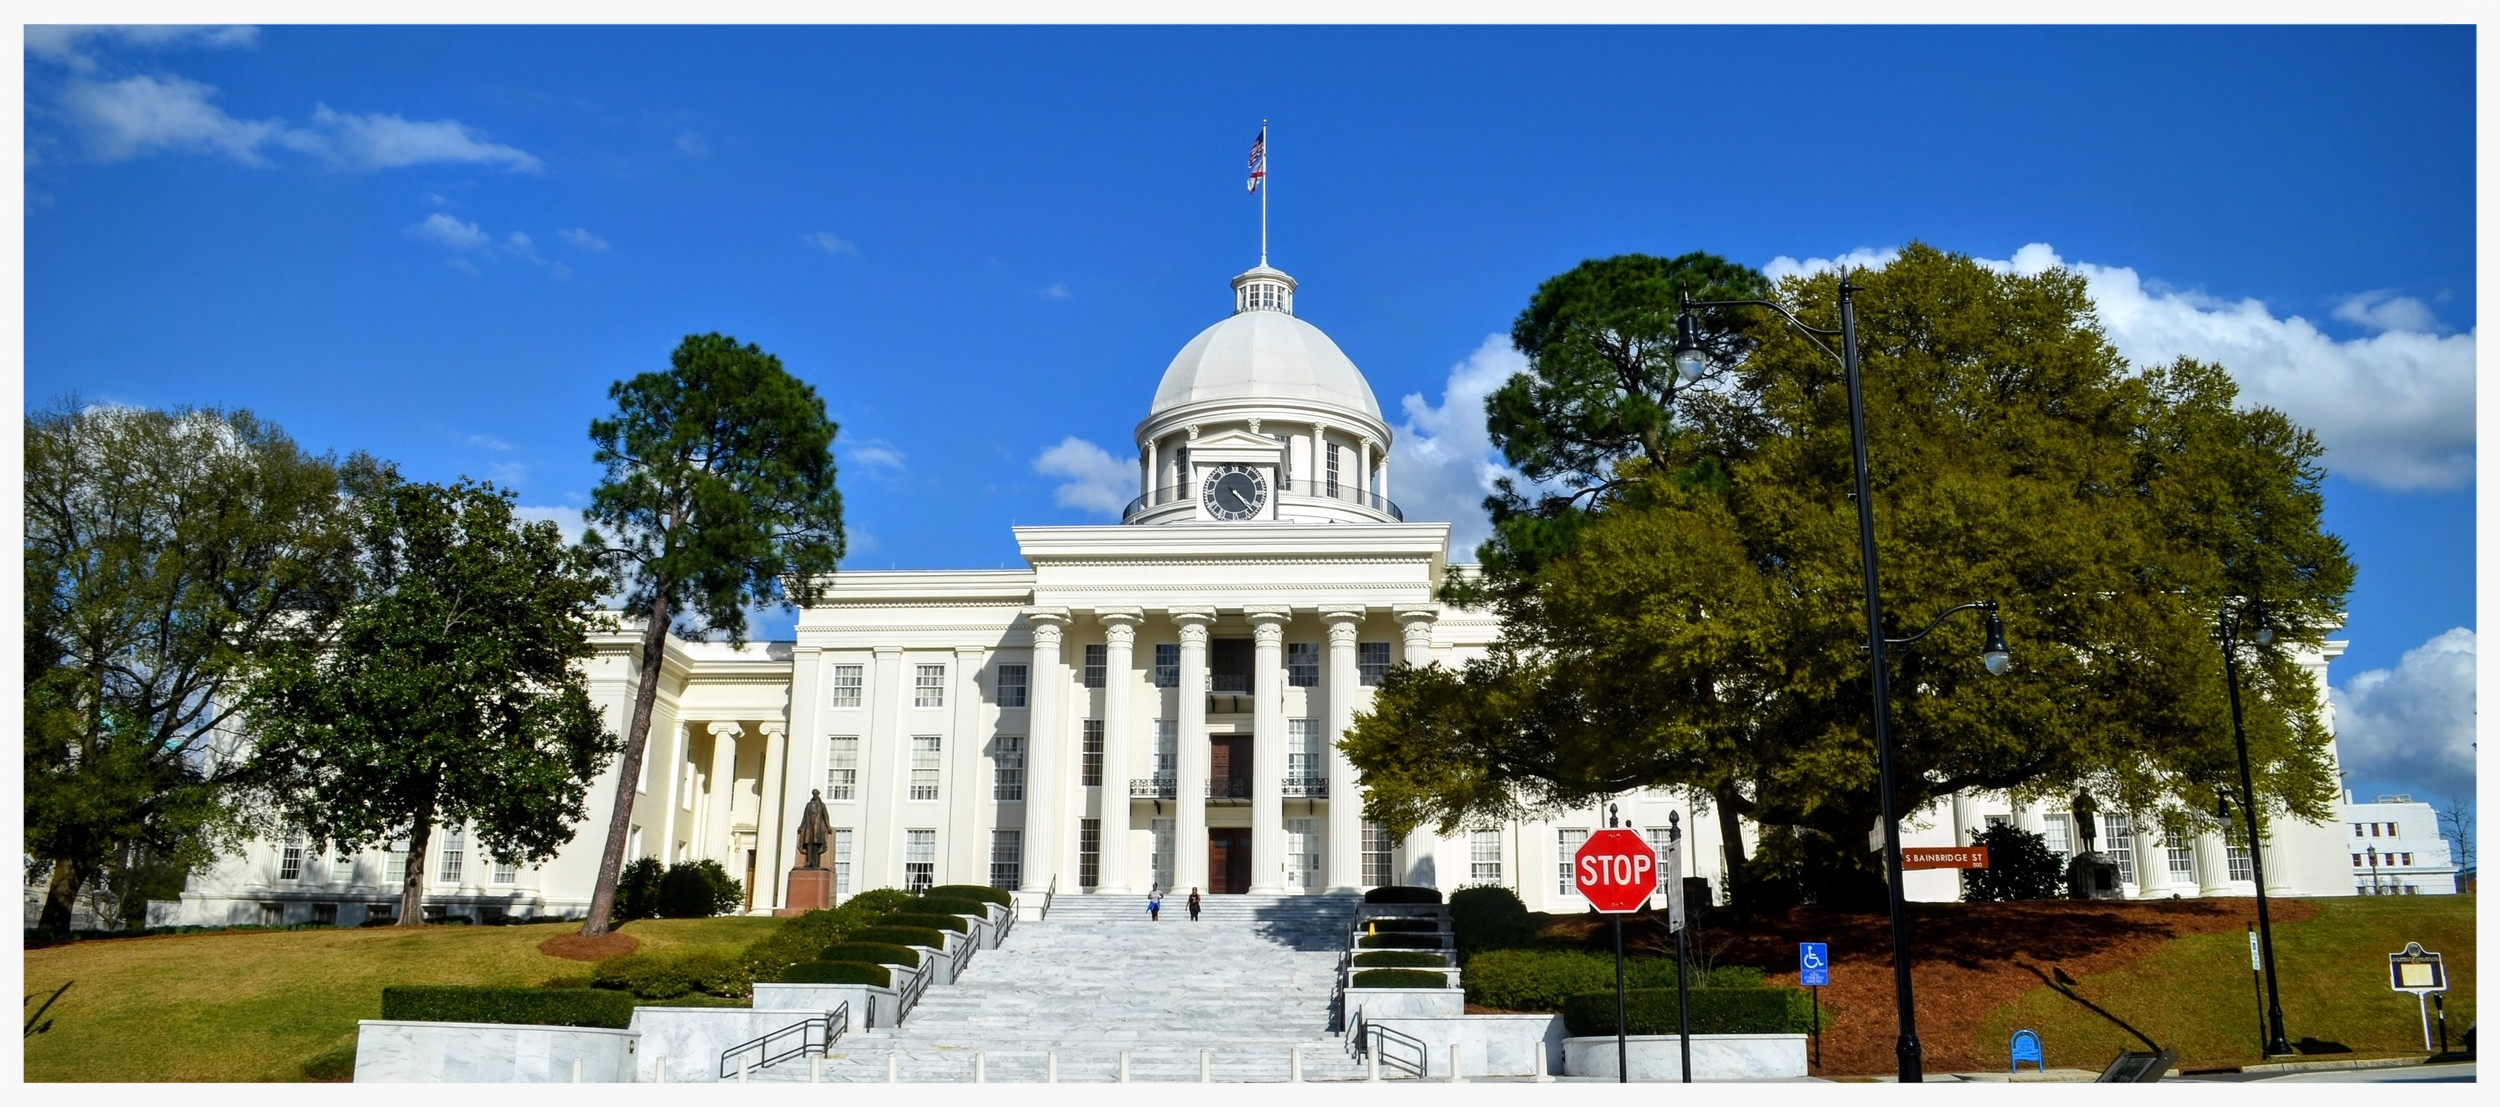 Alabama State Capitol, looking up from the base of the steps